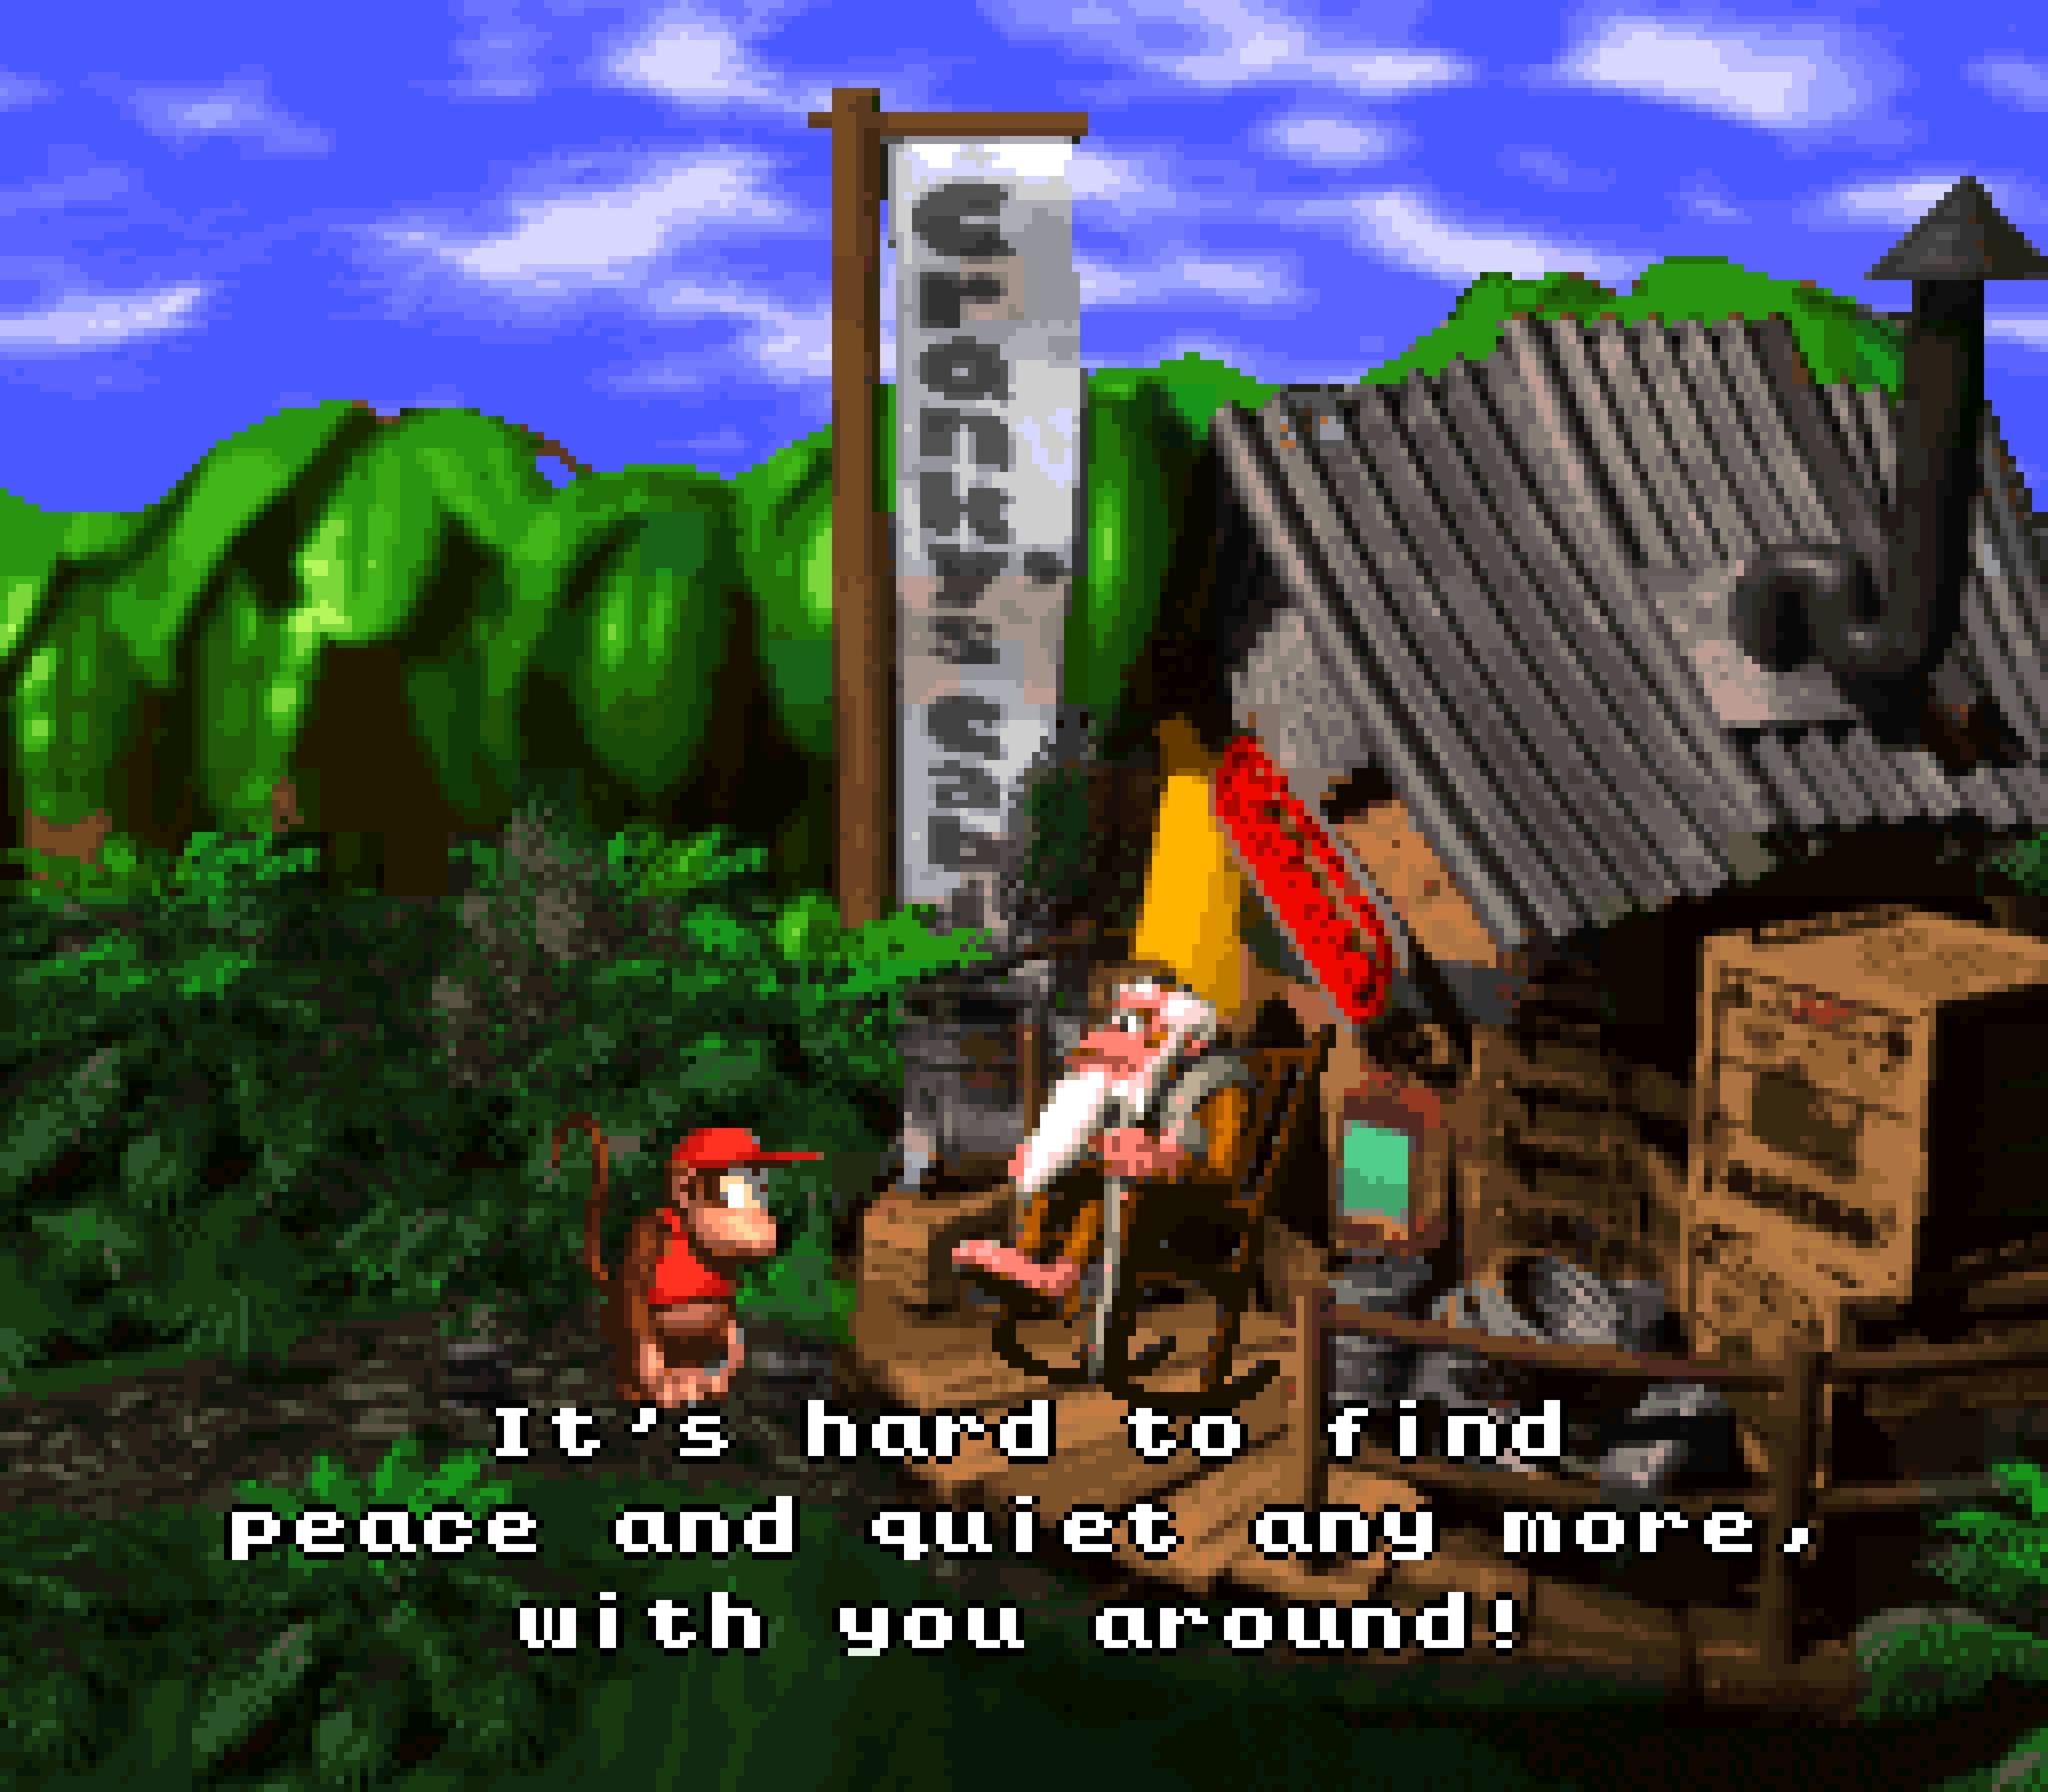 Cranky's Cabin in Donkey Kong Country.